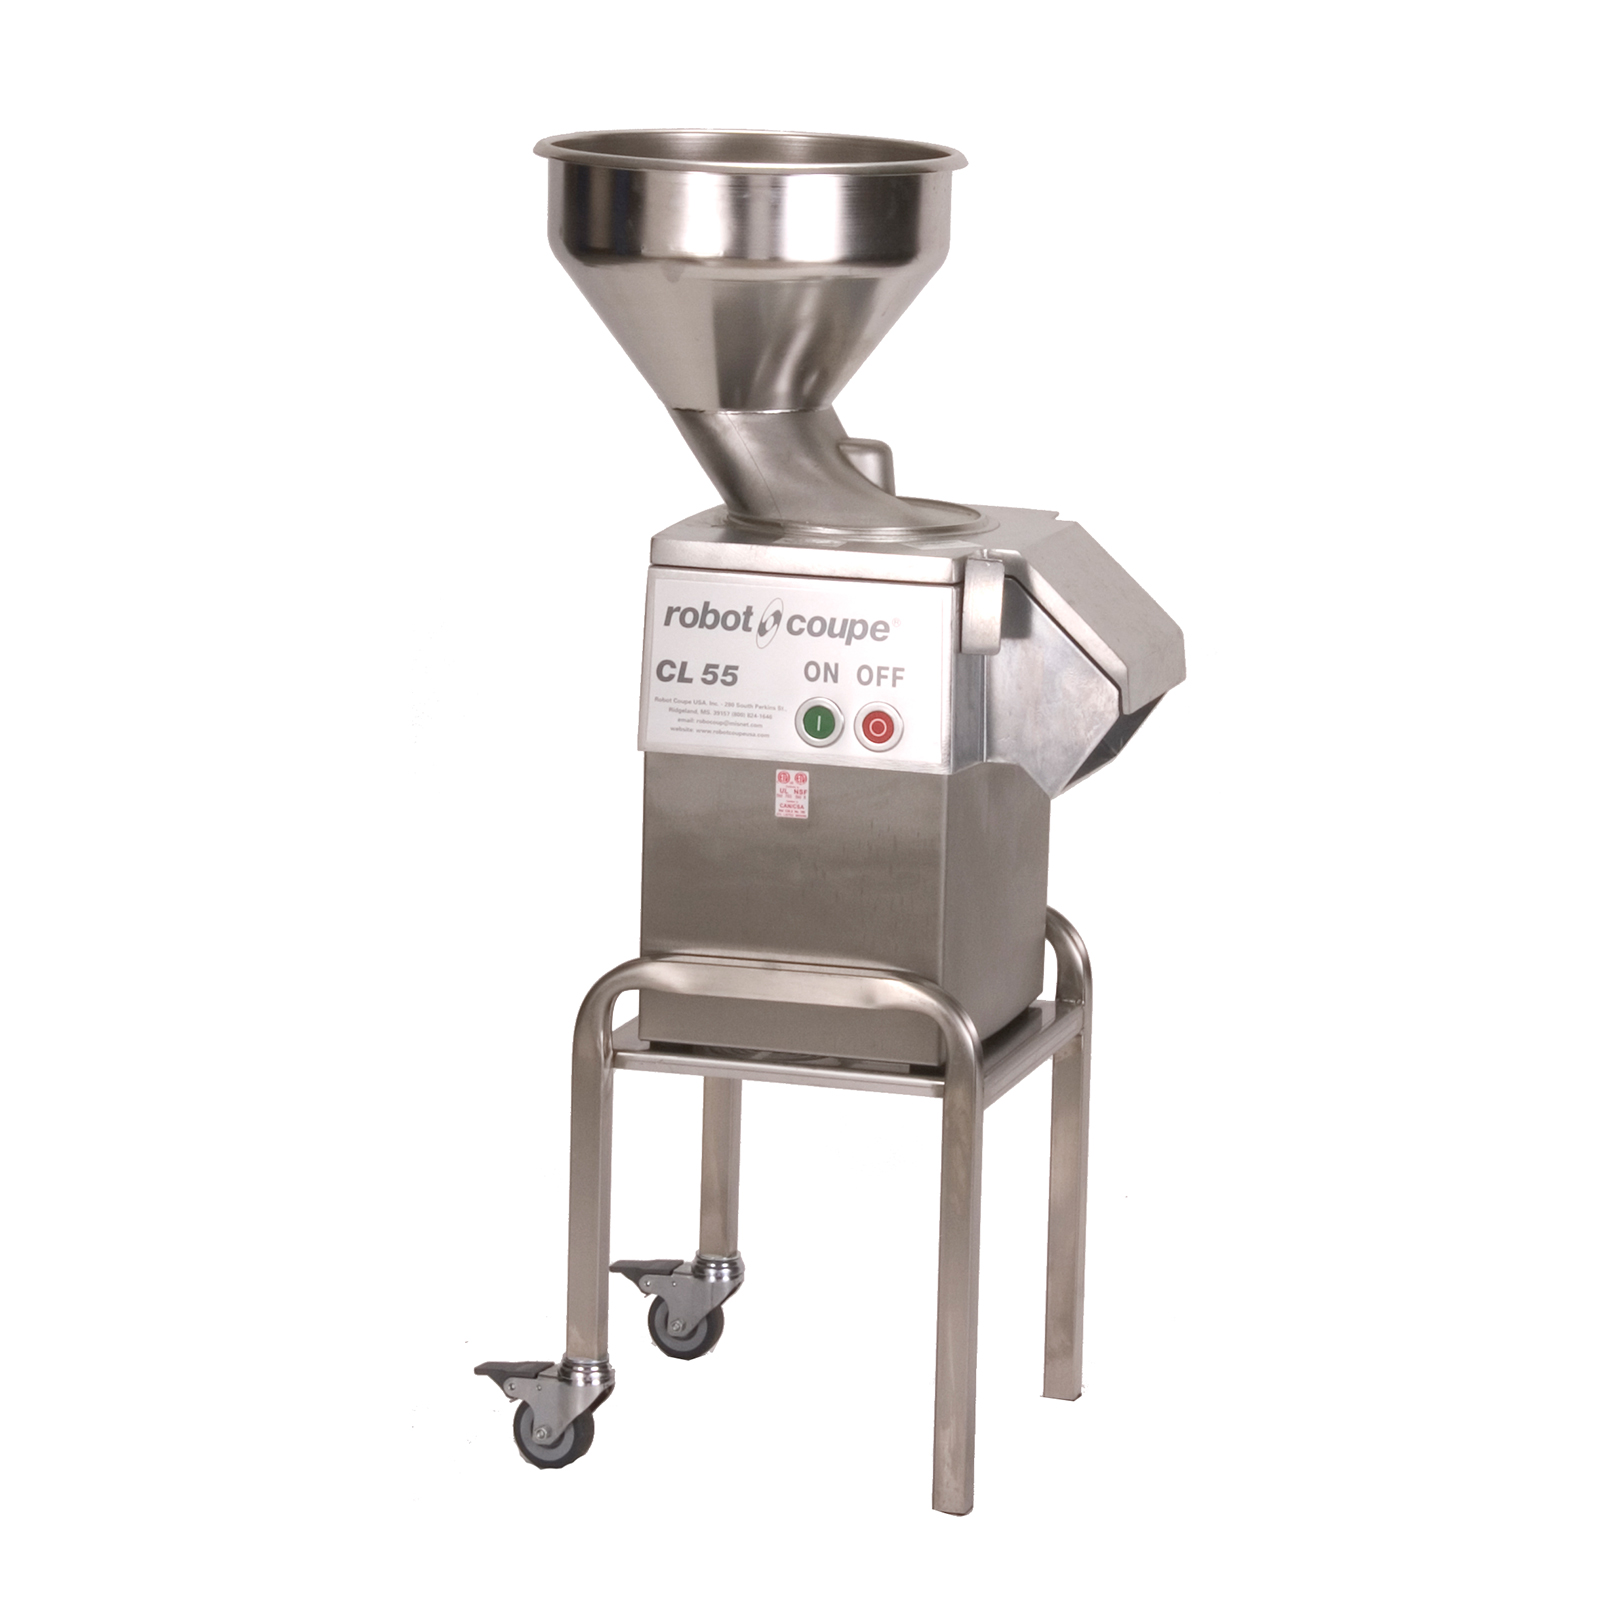 Robot Coupe CL55 BULK W/STAND food processor, floor model